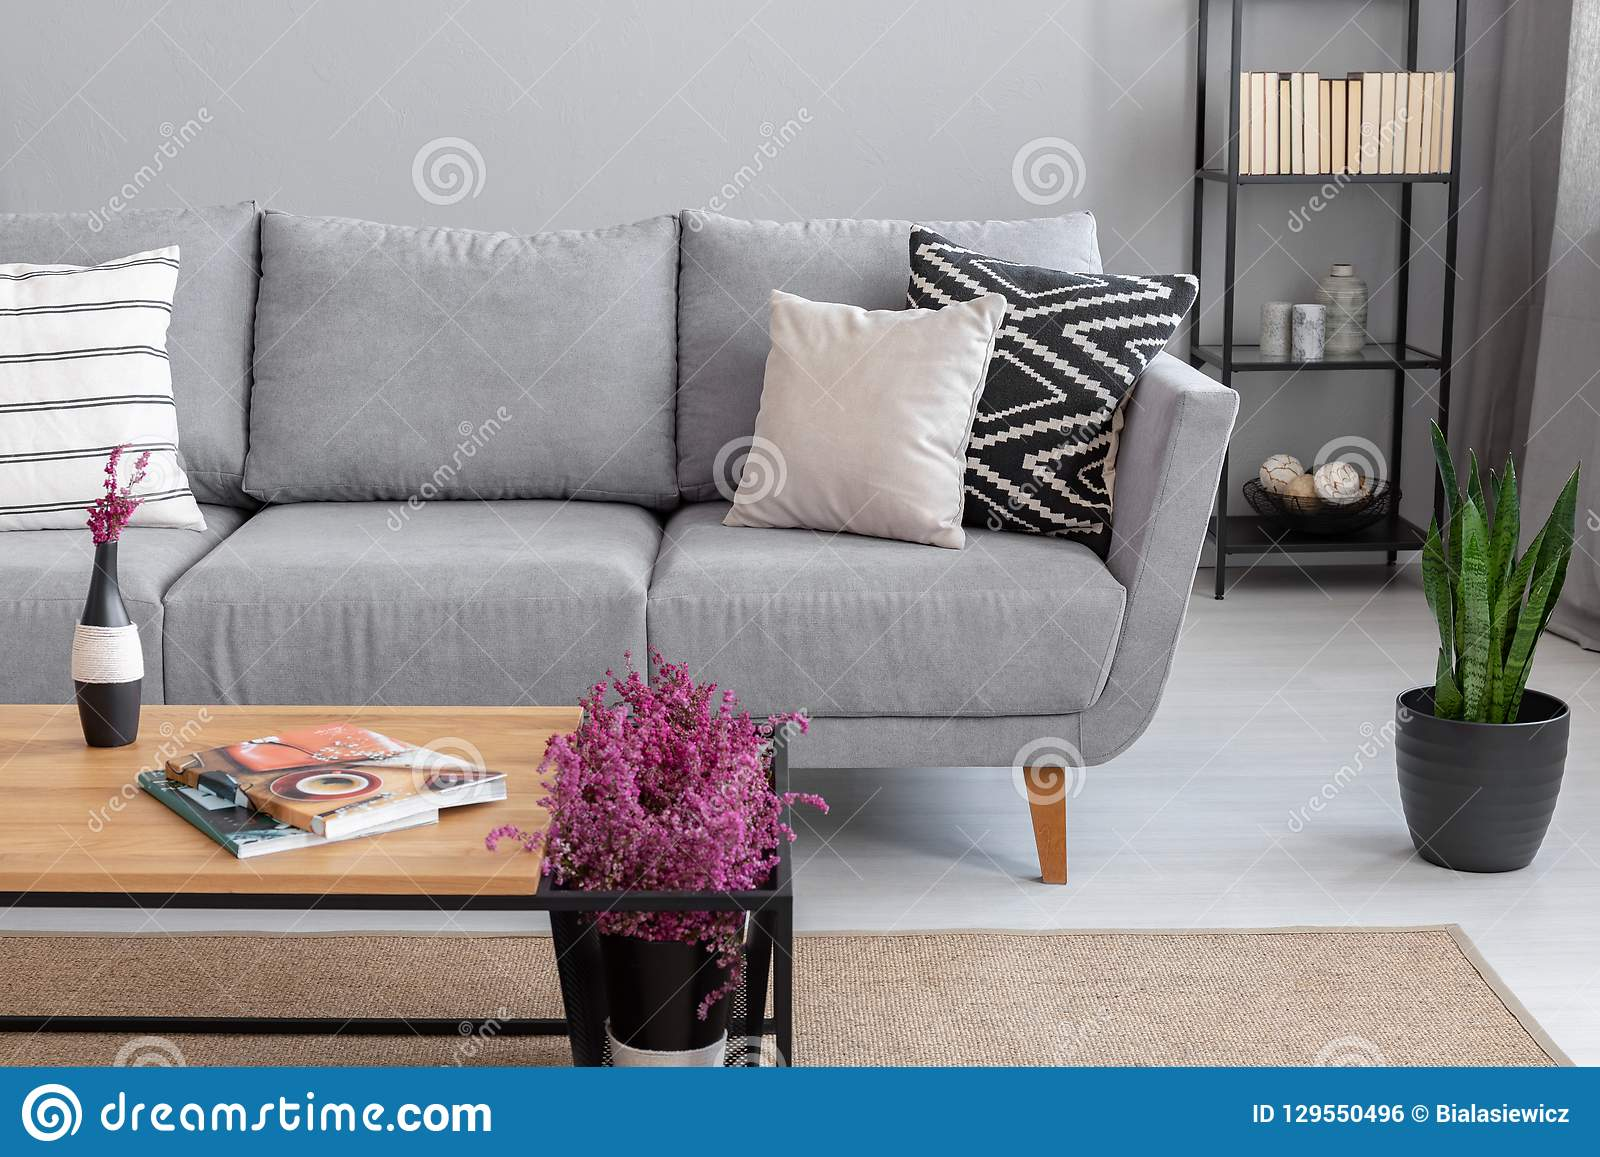 Magazines and heather on the wooden table near comfortable grey sofa with pillows, real photo with copy space